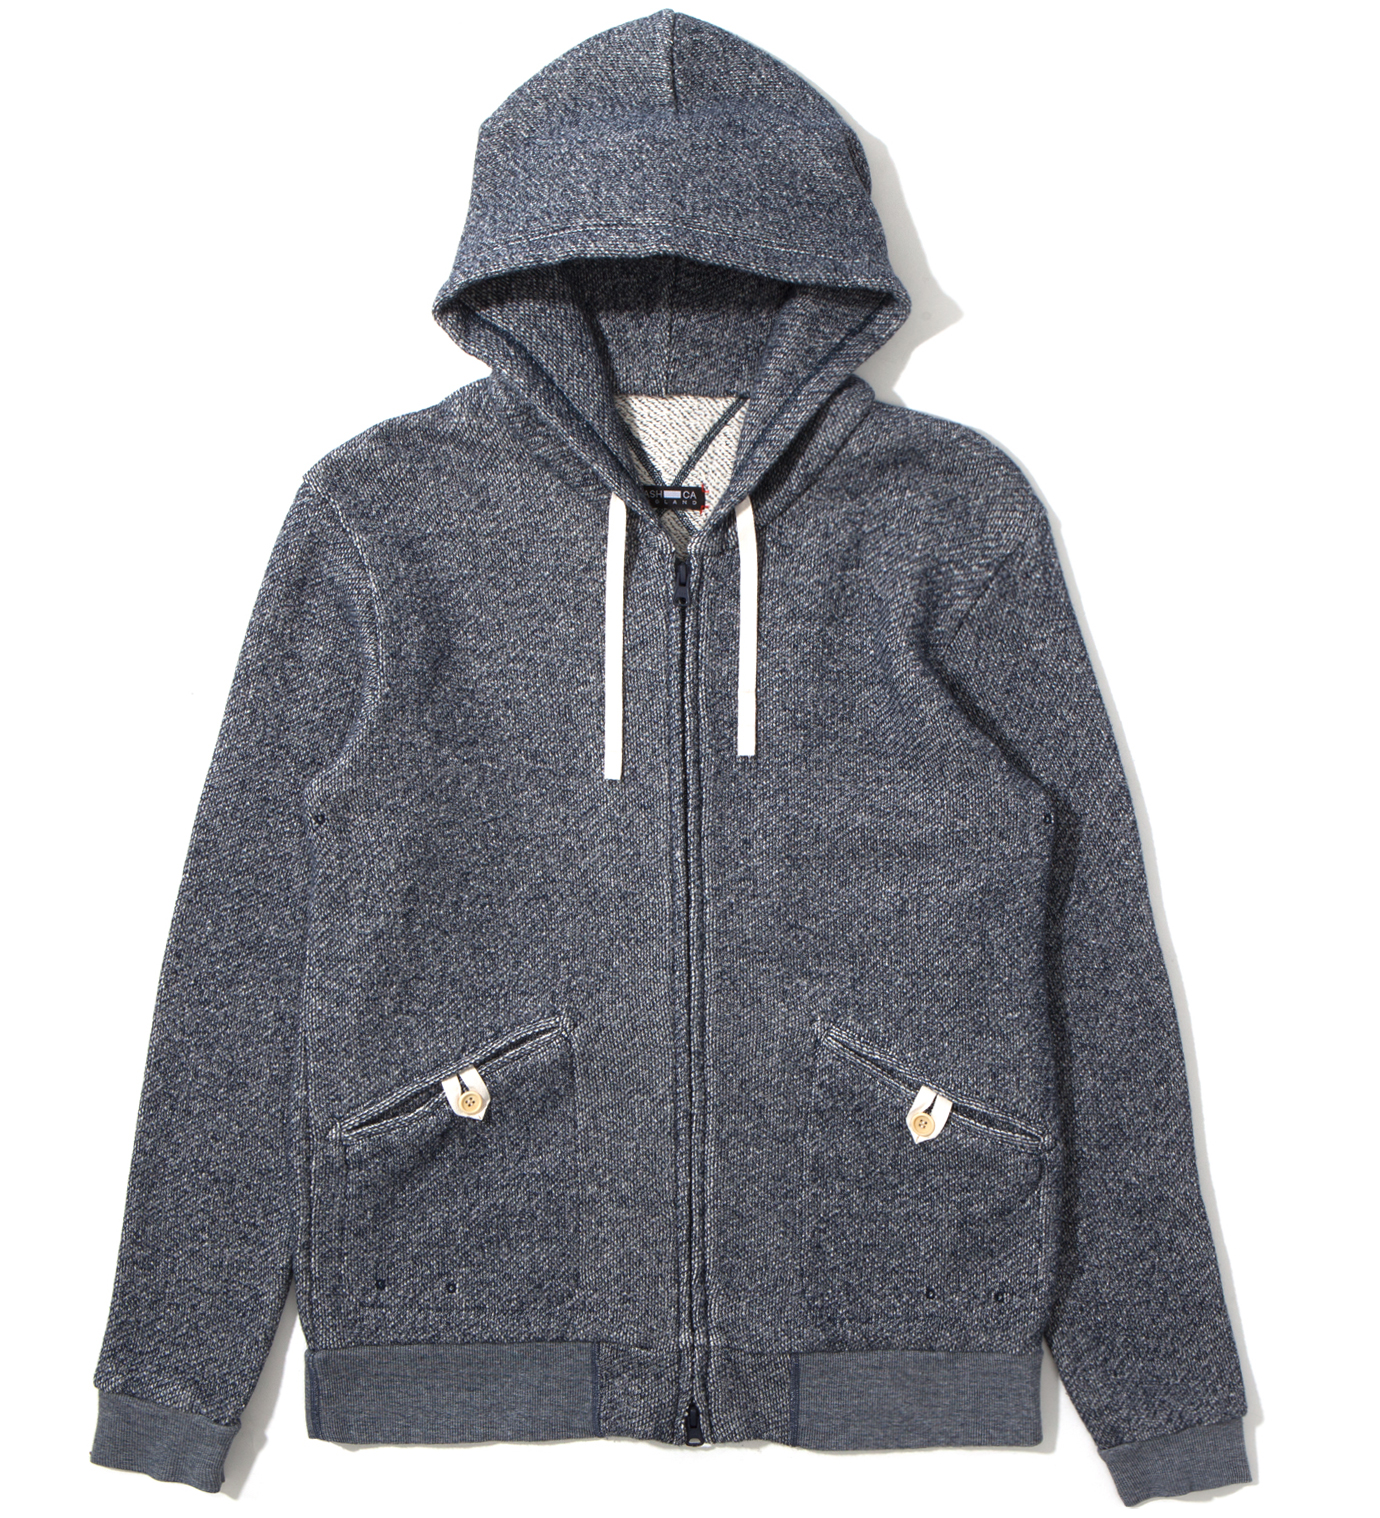 CASH CA Navy Heavy Weight Zip Parka